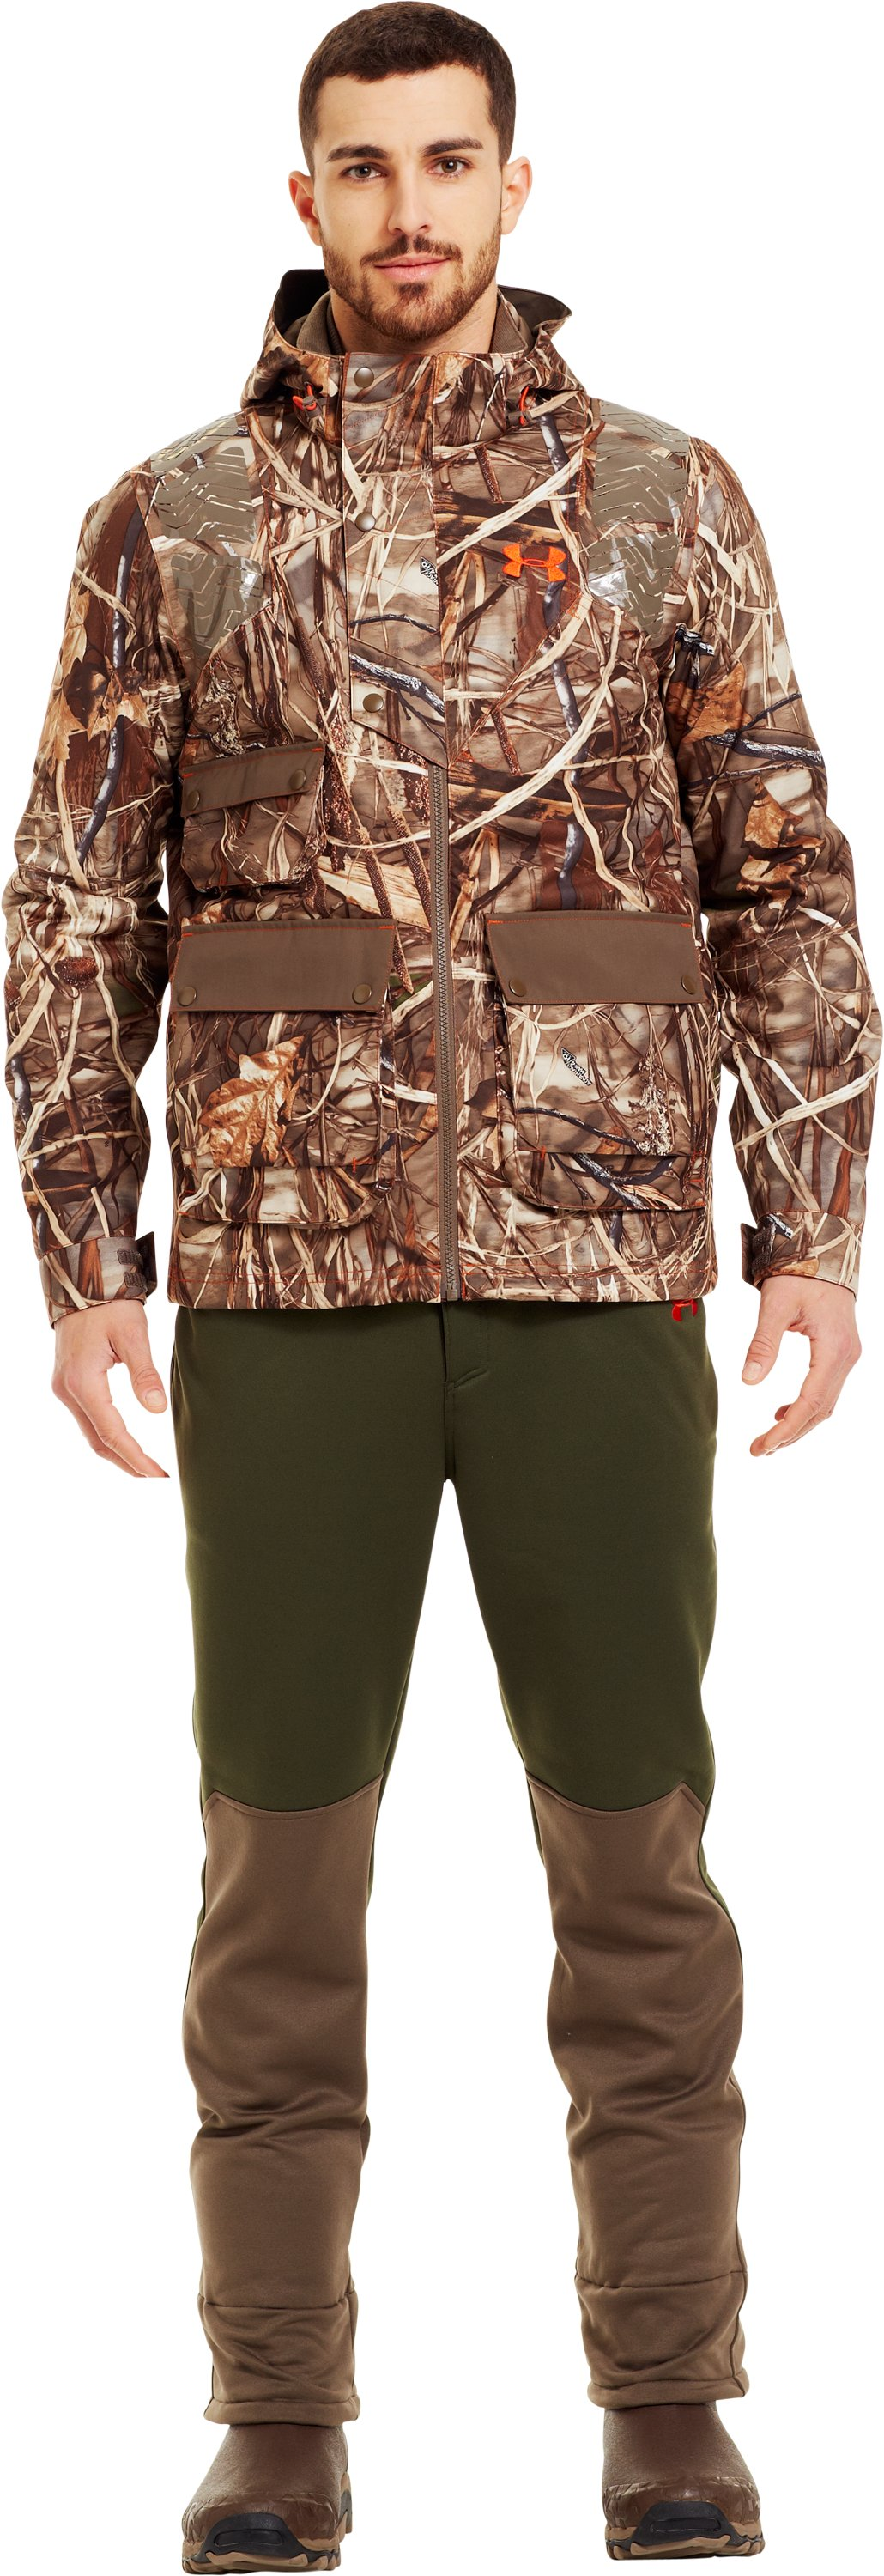 Men's UA Skysweeper Systems 3-in-1 Jacket, Realtree Max